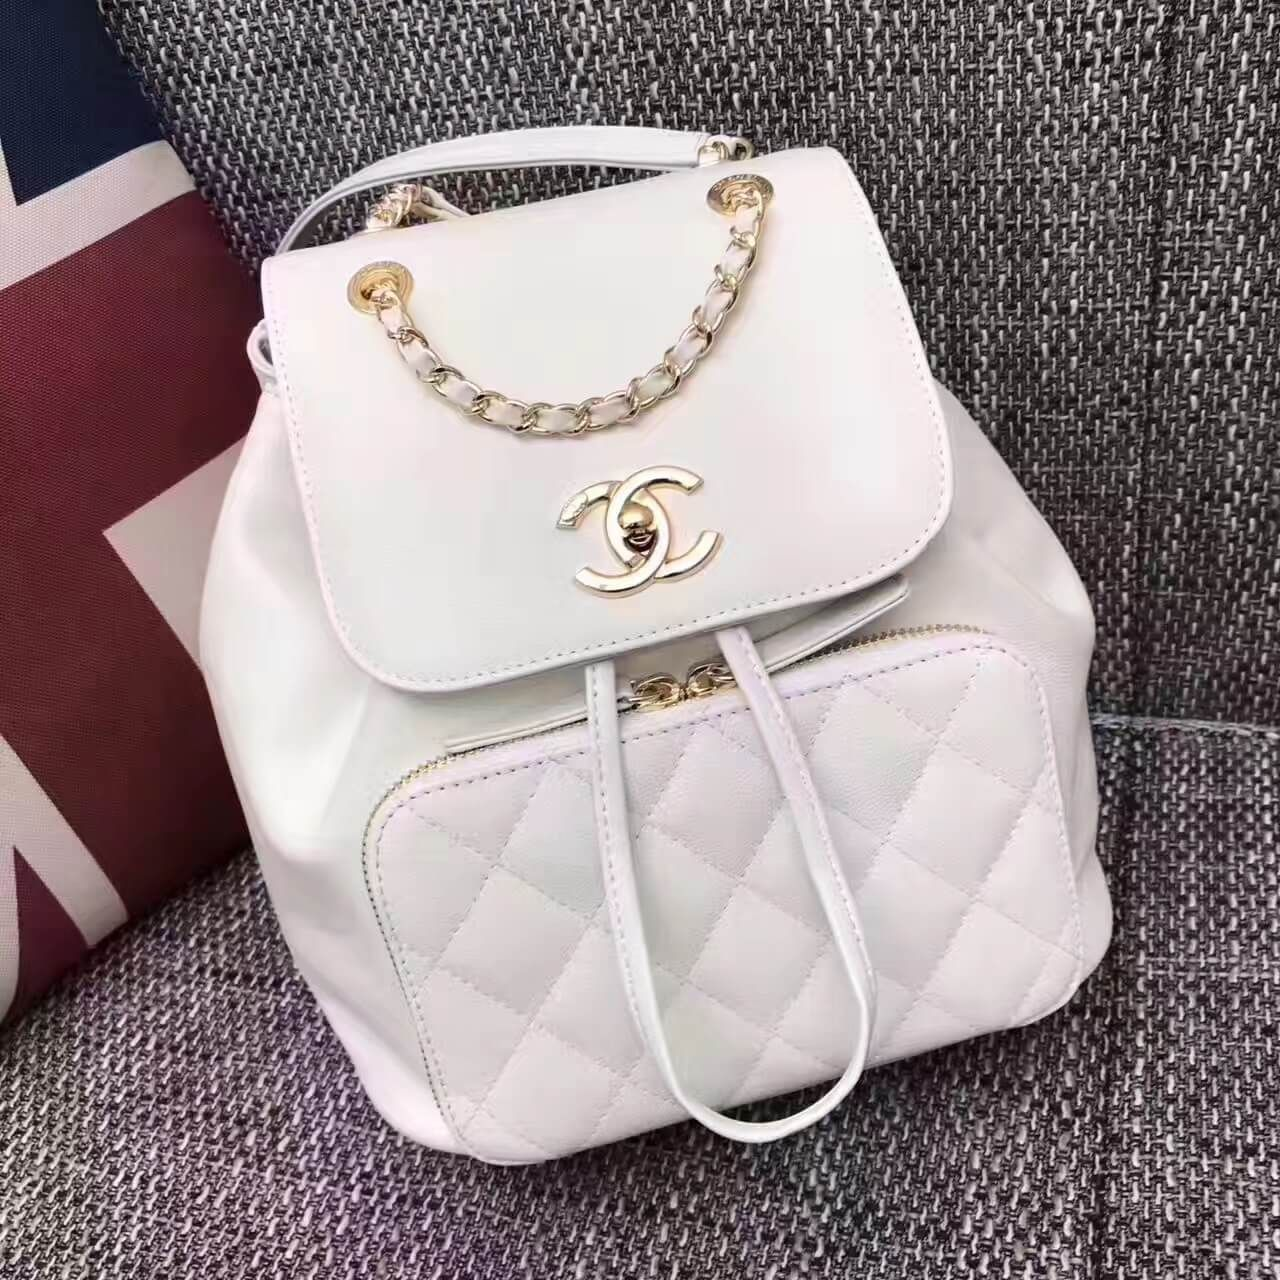 b4593b3ca9a Chanel Grained Calfskin Business Affinity Backpack Bag A93748 White 2017